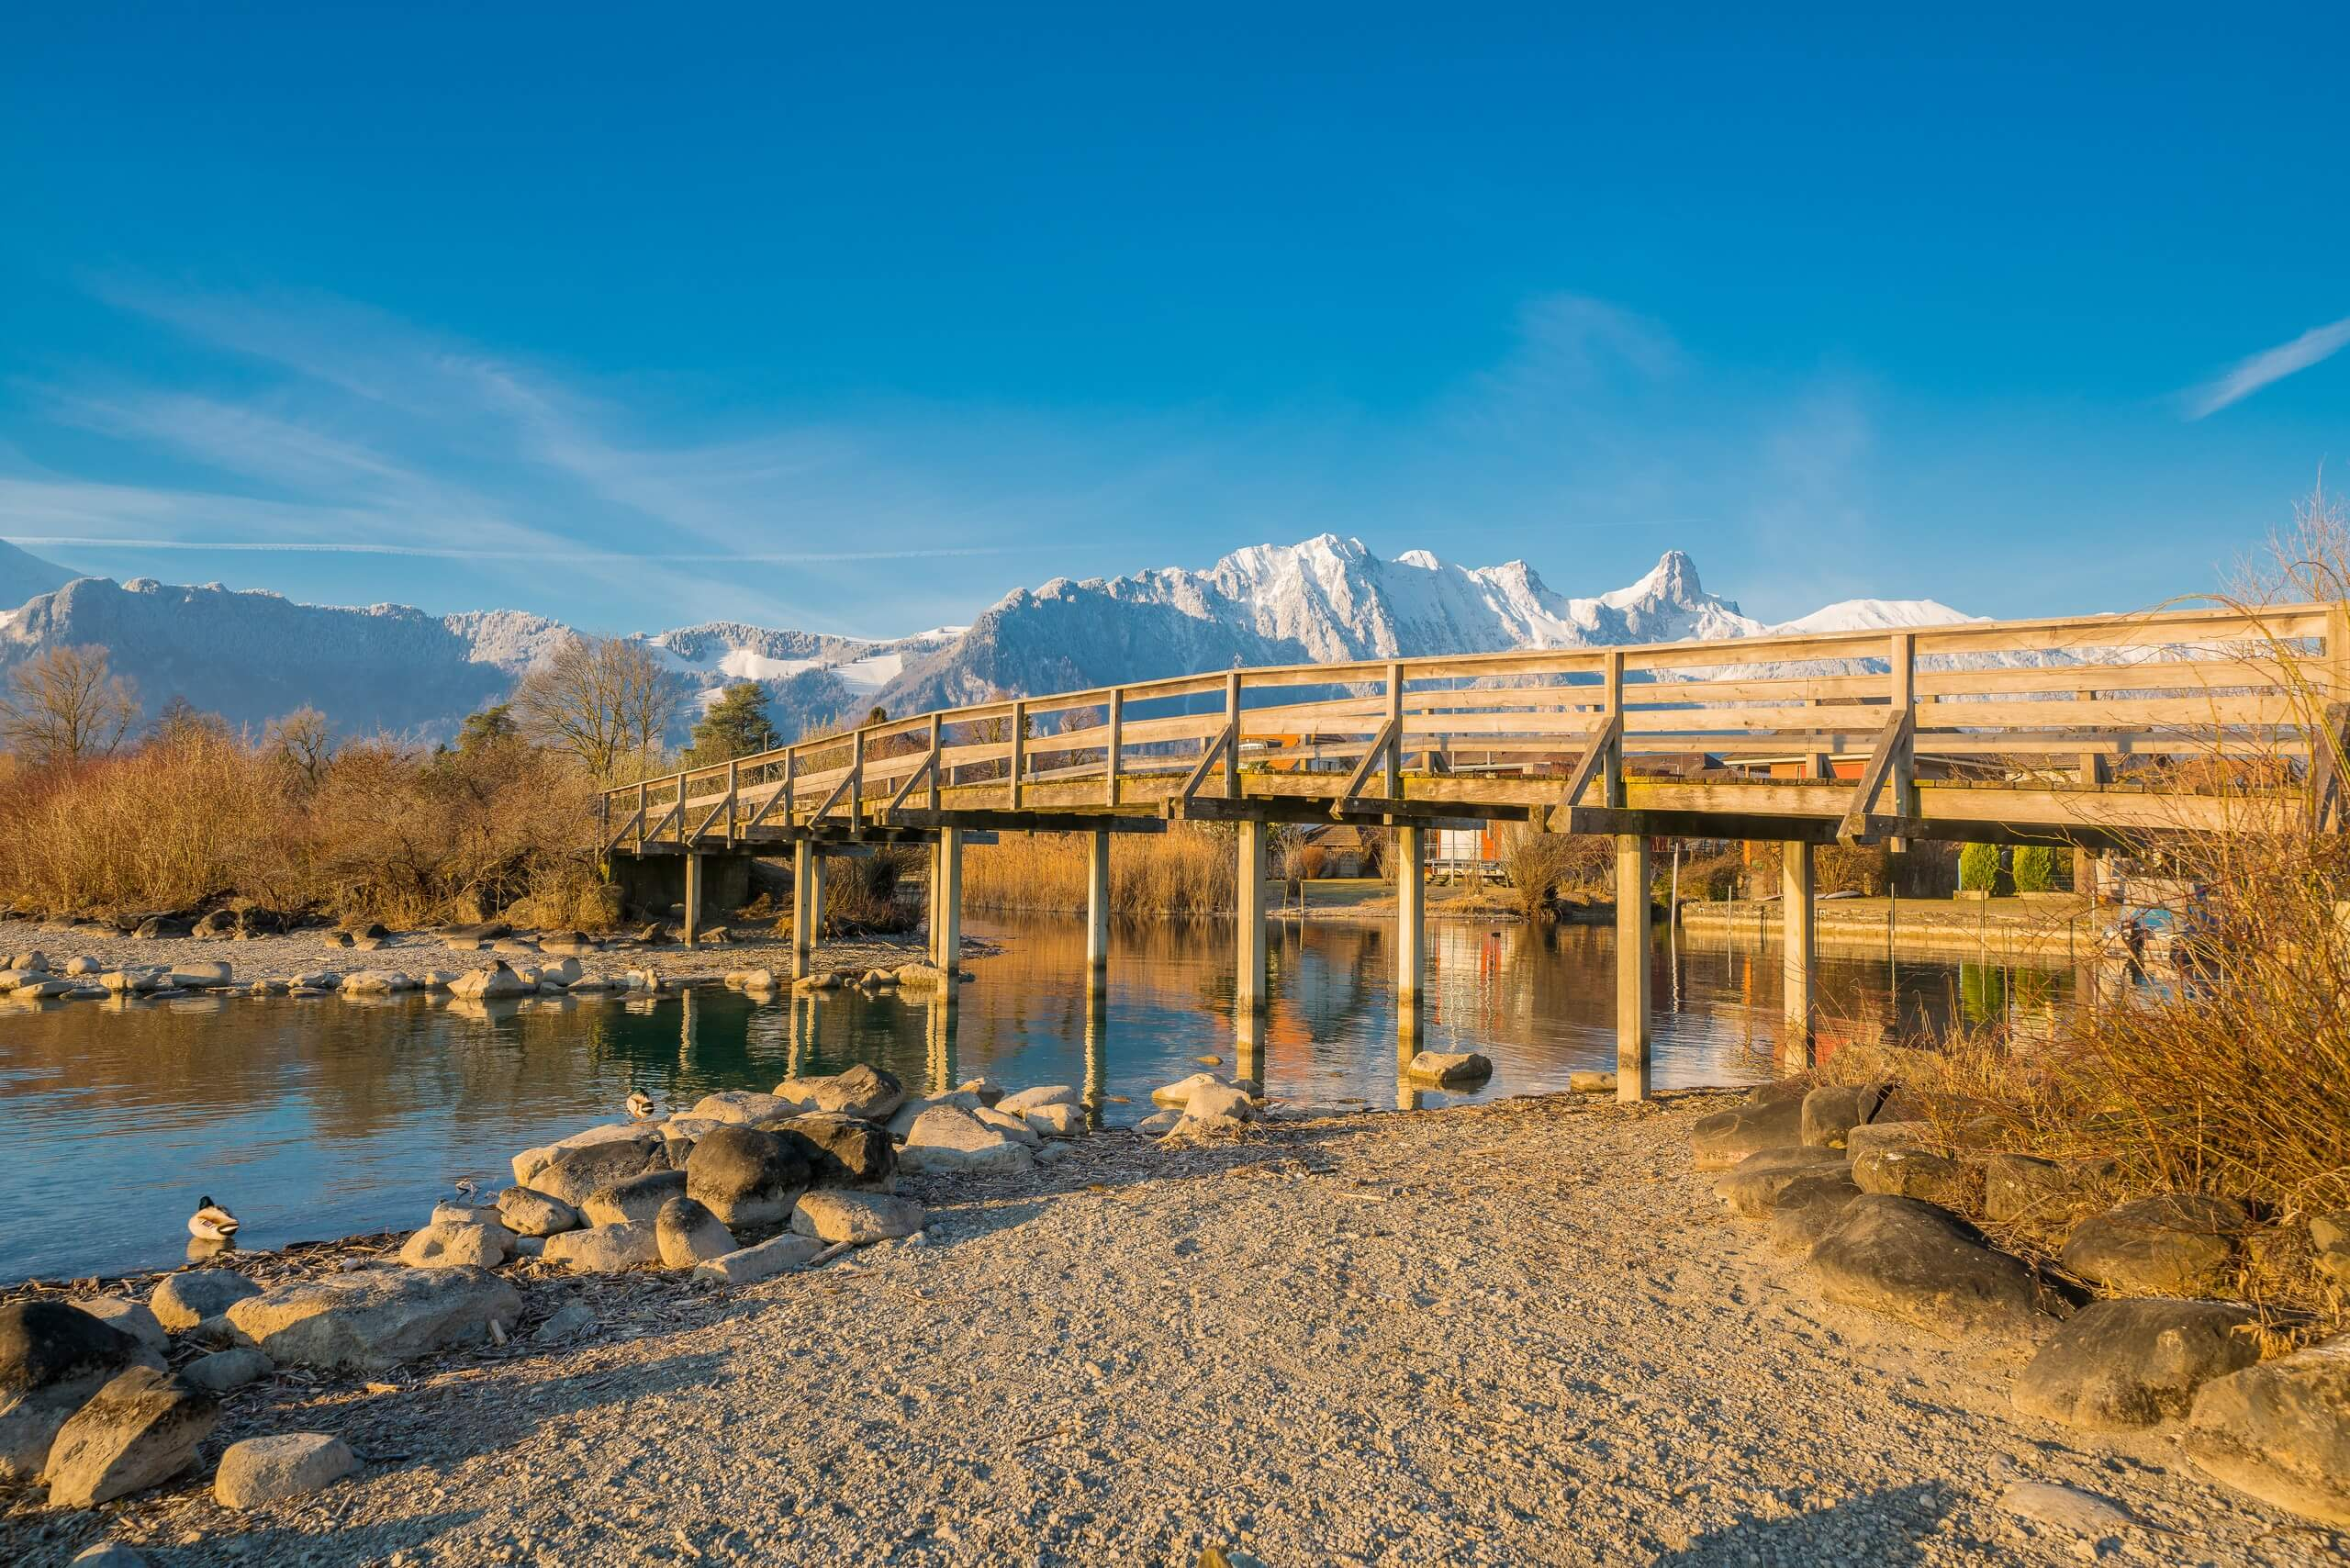 thun-bonstettenpark-winter-sand-bruecke-stockhorn-morgen-winteraktivitaeten